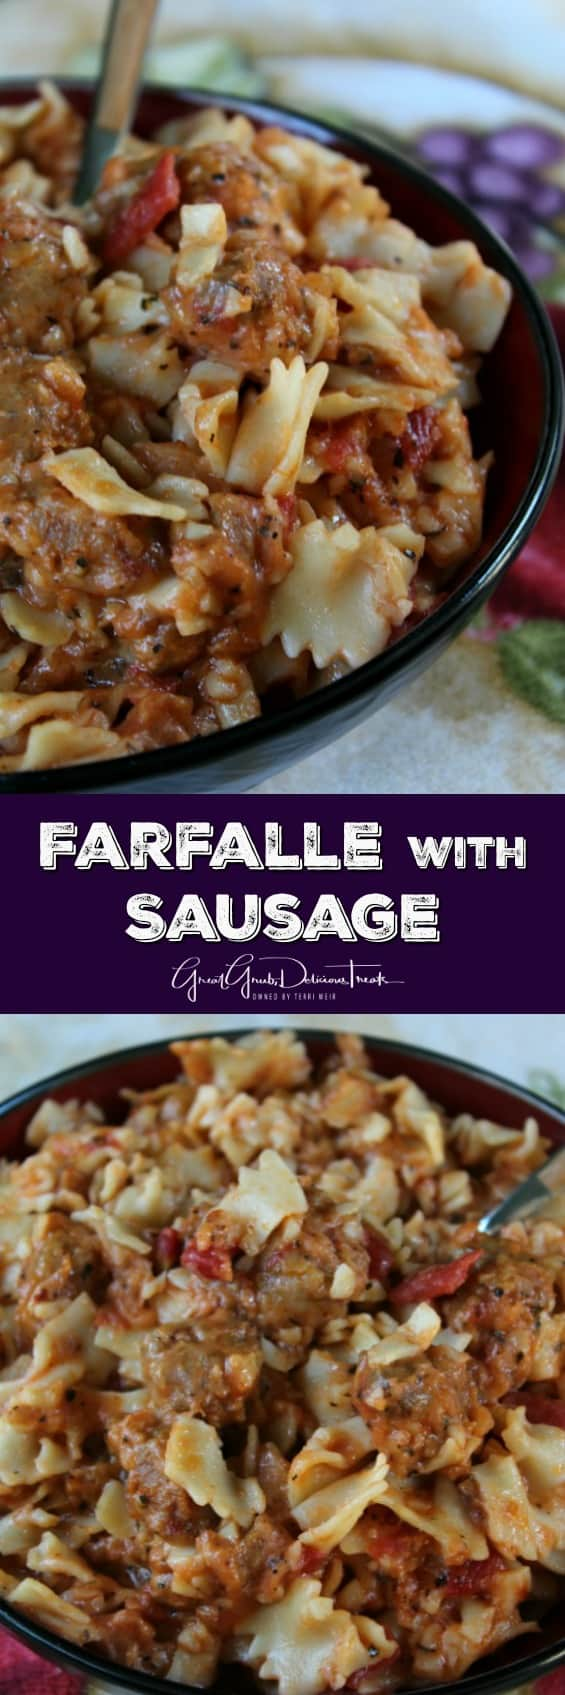 Farfalle with Sausage - two photos with the sausage pasta recipe in a black bowl with the title of the recipe between the two pictures.